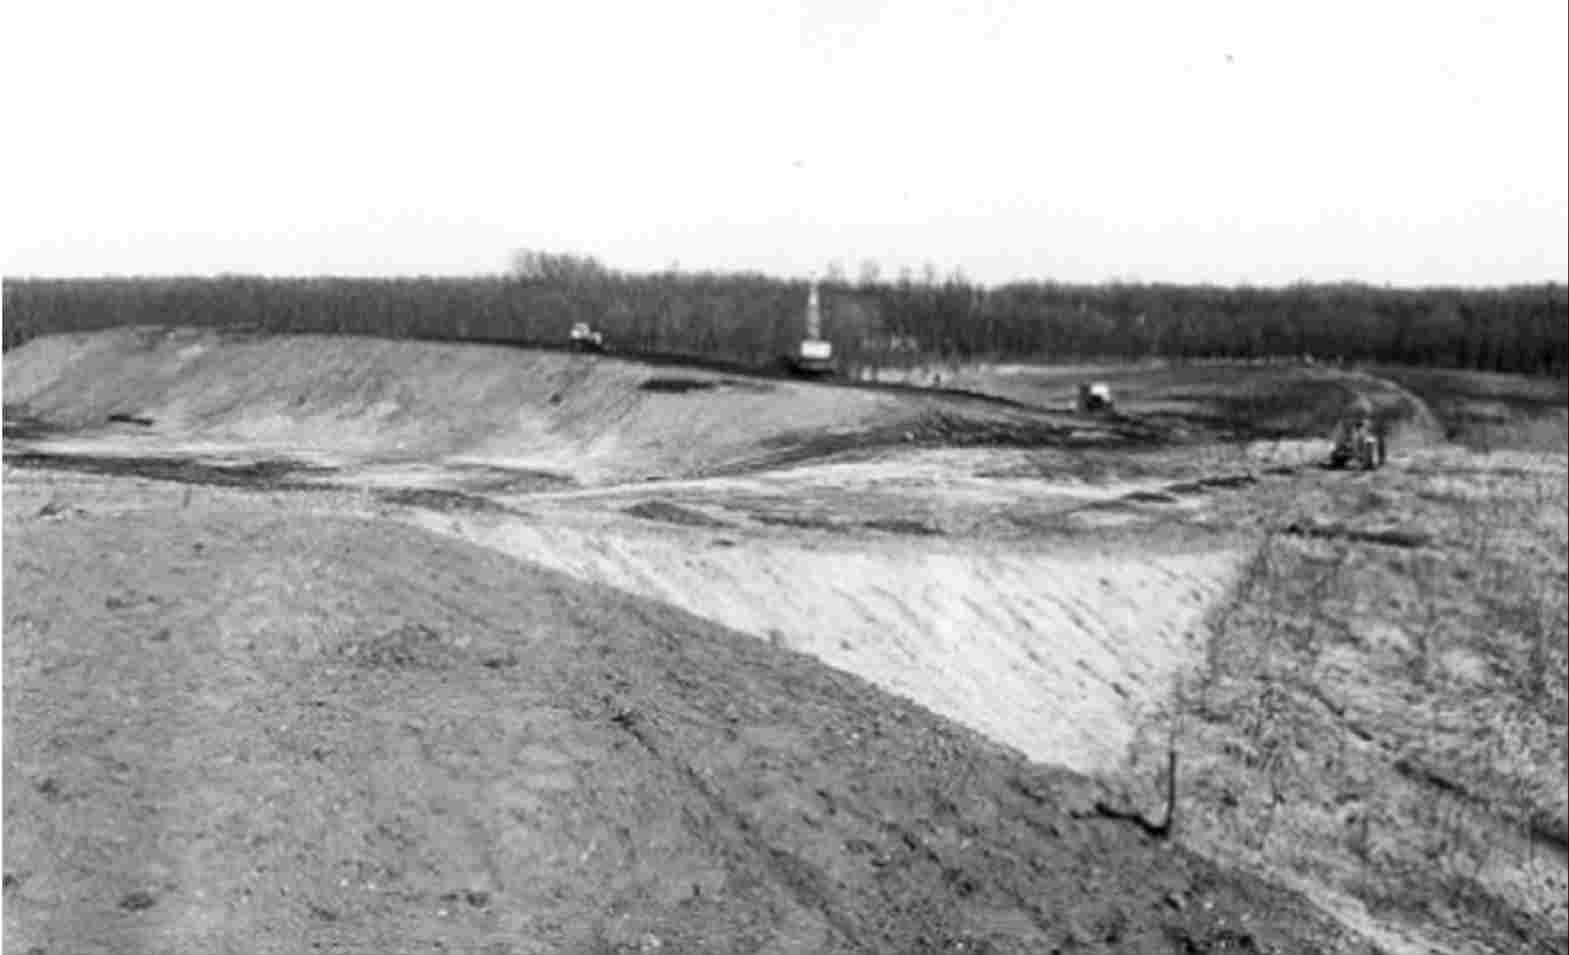 Finished old waste dump in the Kuinderbos, 1978.